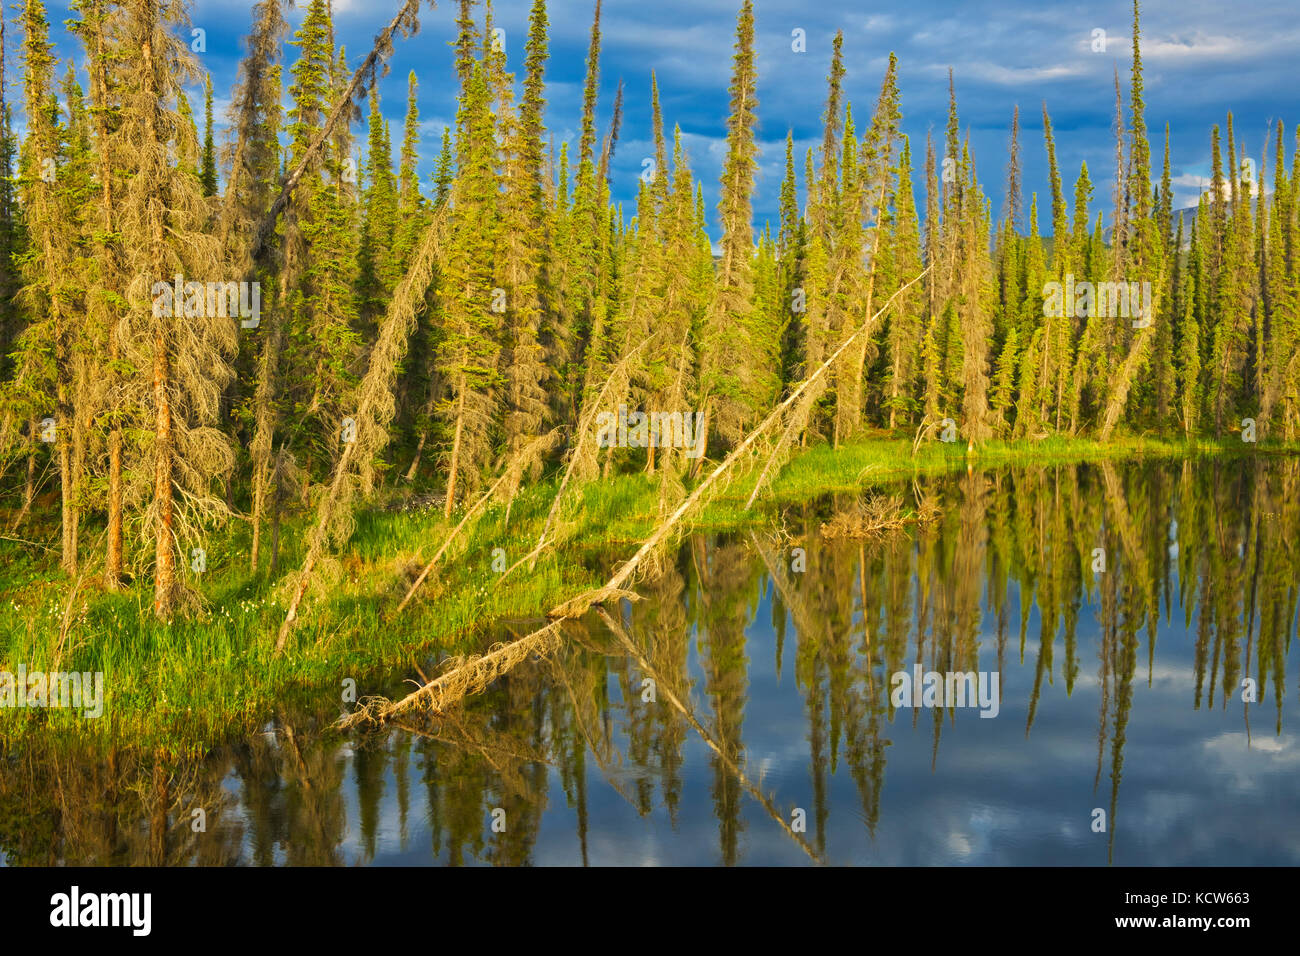 Wetland on the Dempster Highway (KM 210 - 215), Dempster HIghway, Yukon, Canada - Stock Image